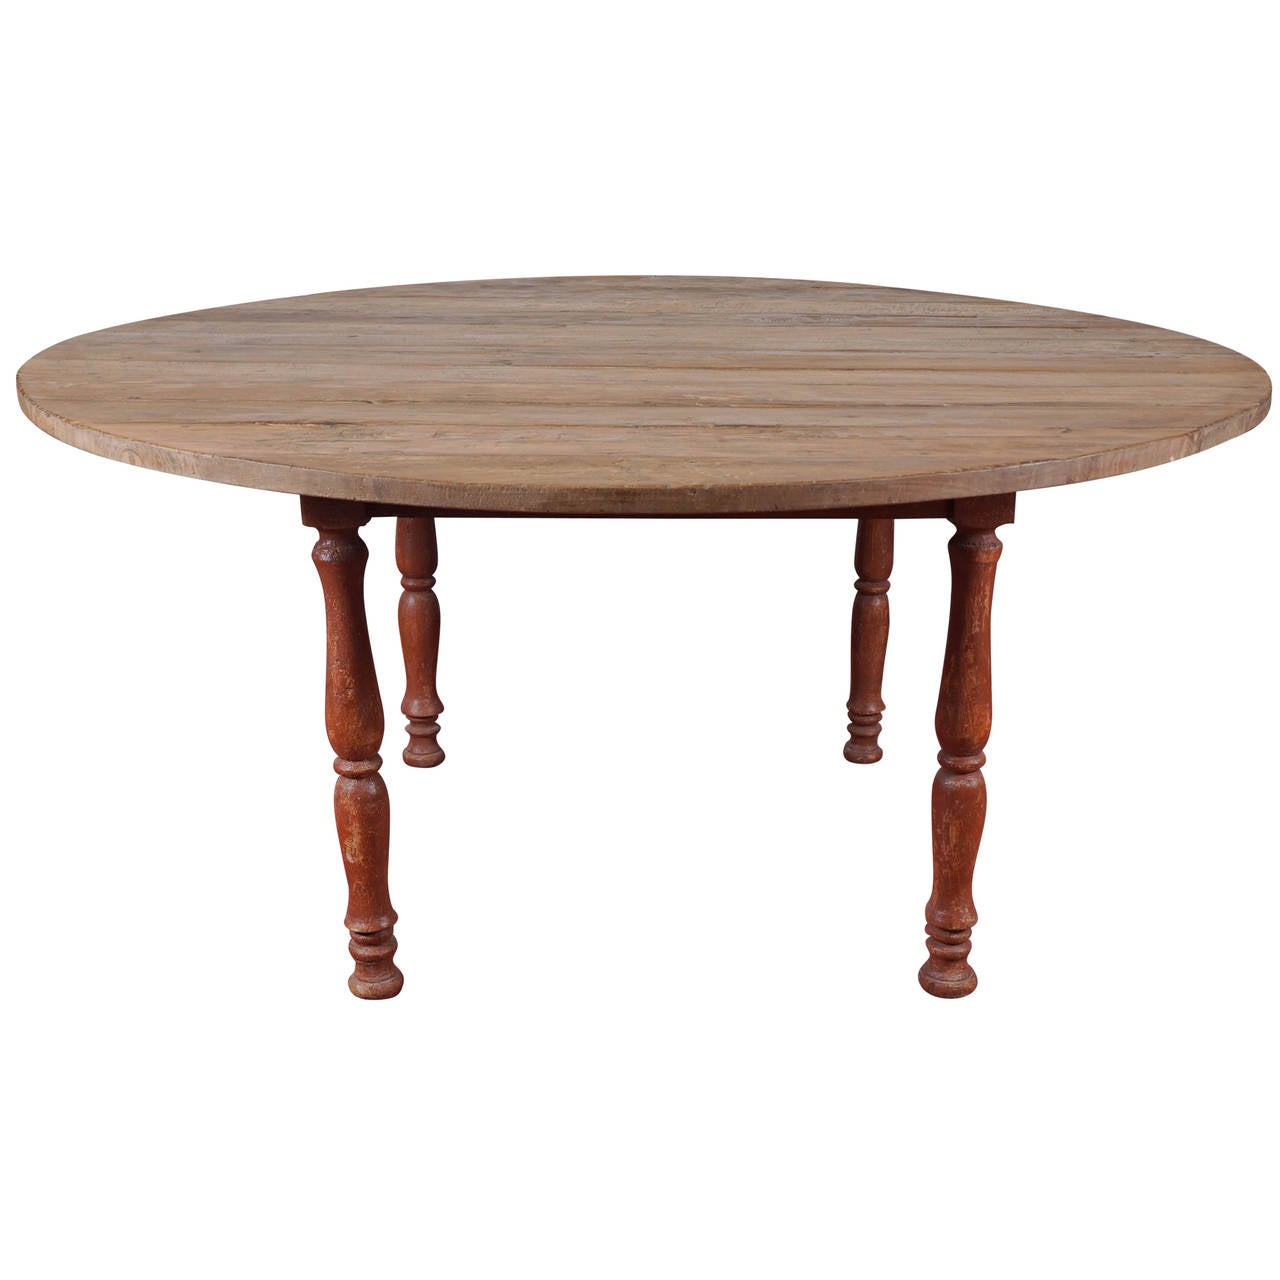 Antique round country dining table at 1stdibs for Antique dining room tables